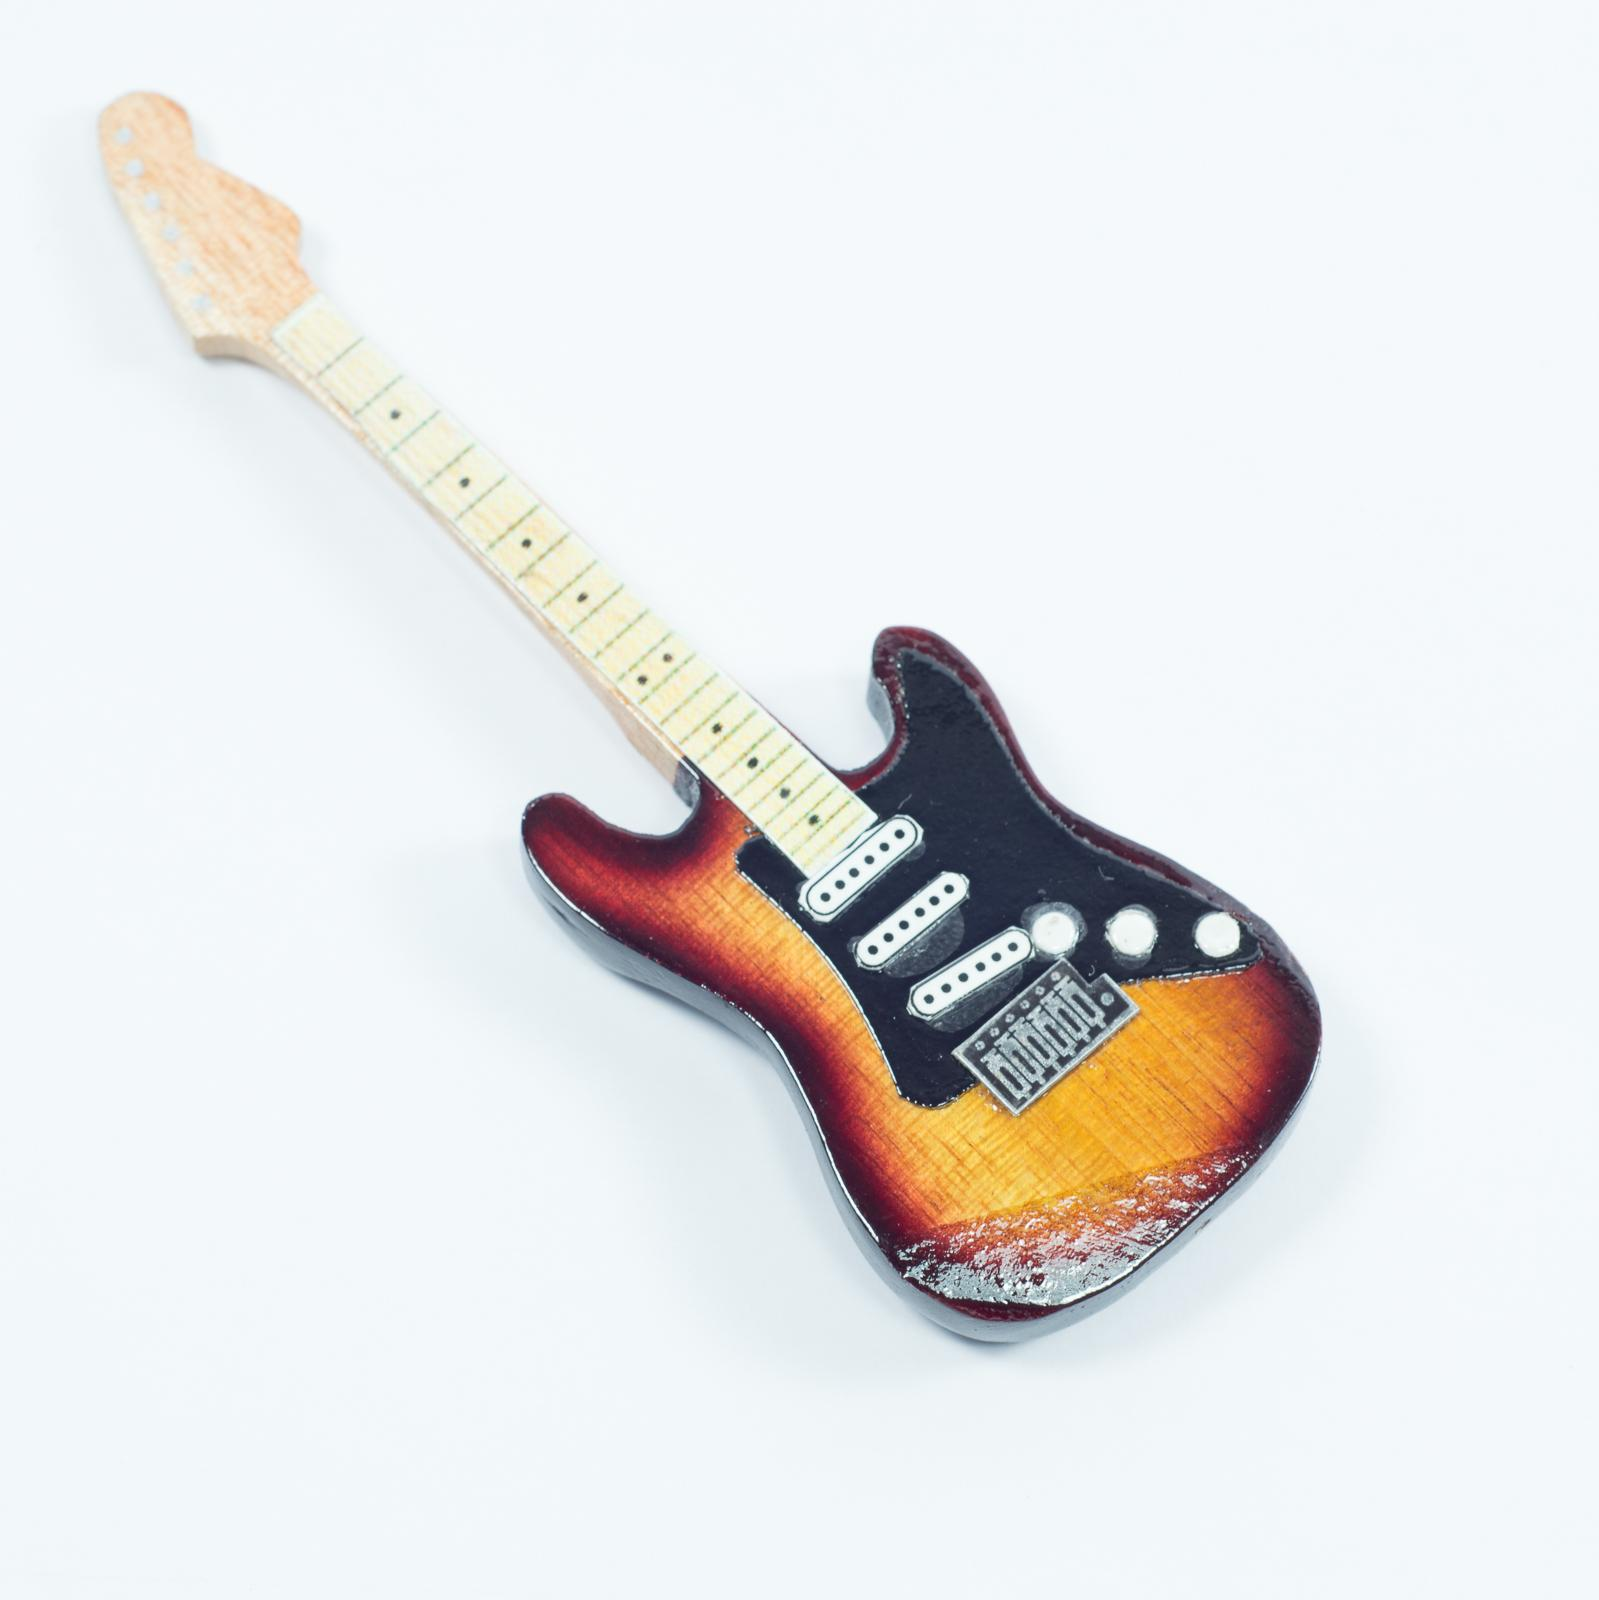 Guitar Shaped Magnet For Fridge - Vintage